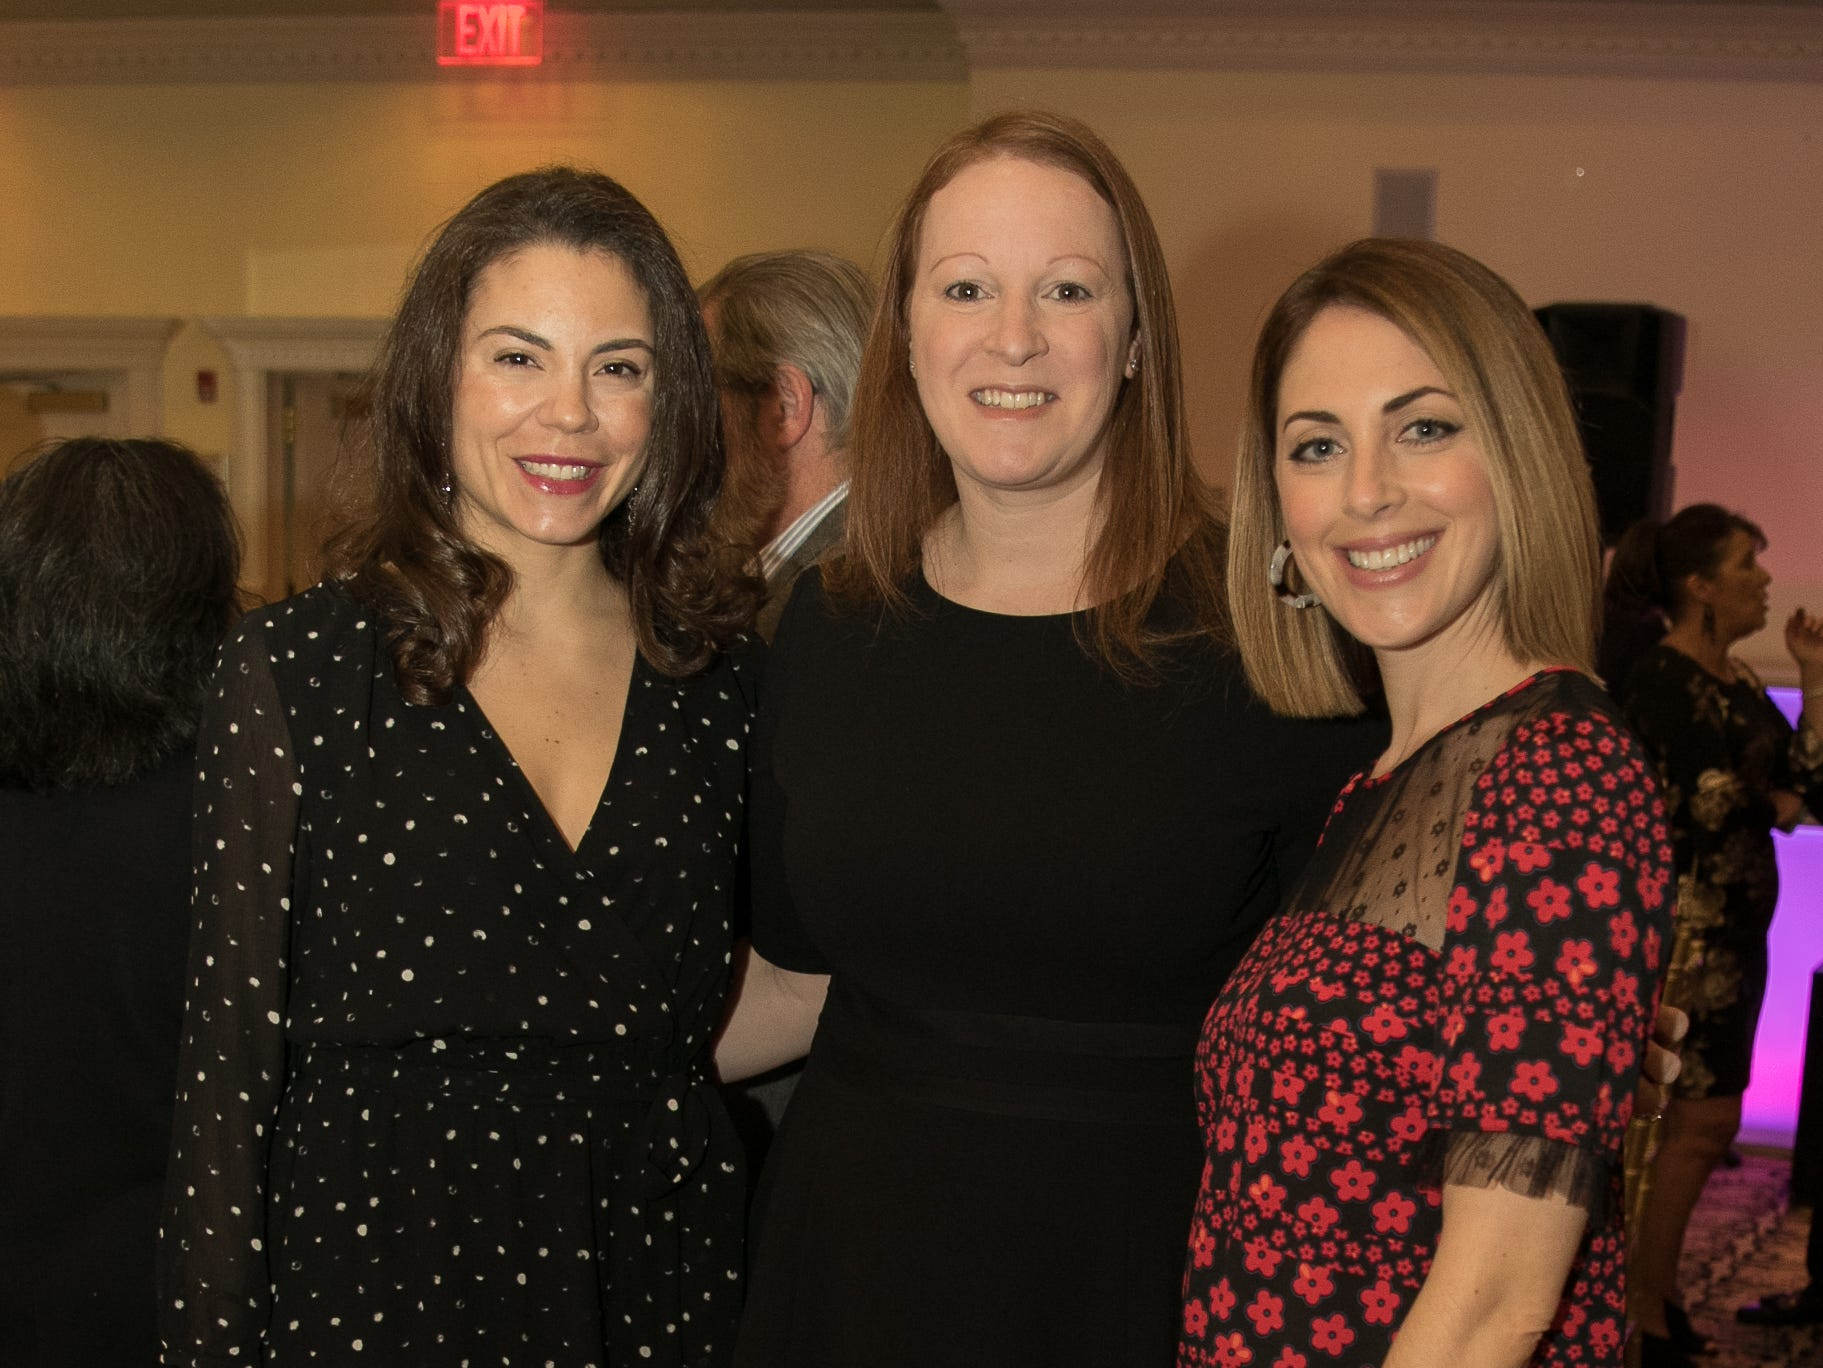 Clarena McBeth, Kim Diedtrich, Courtney Hubbard. The Emmanuel Cancer Foundation 9th Annual Bash at The Brick House. 03/15/2019